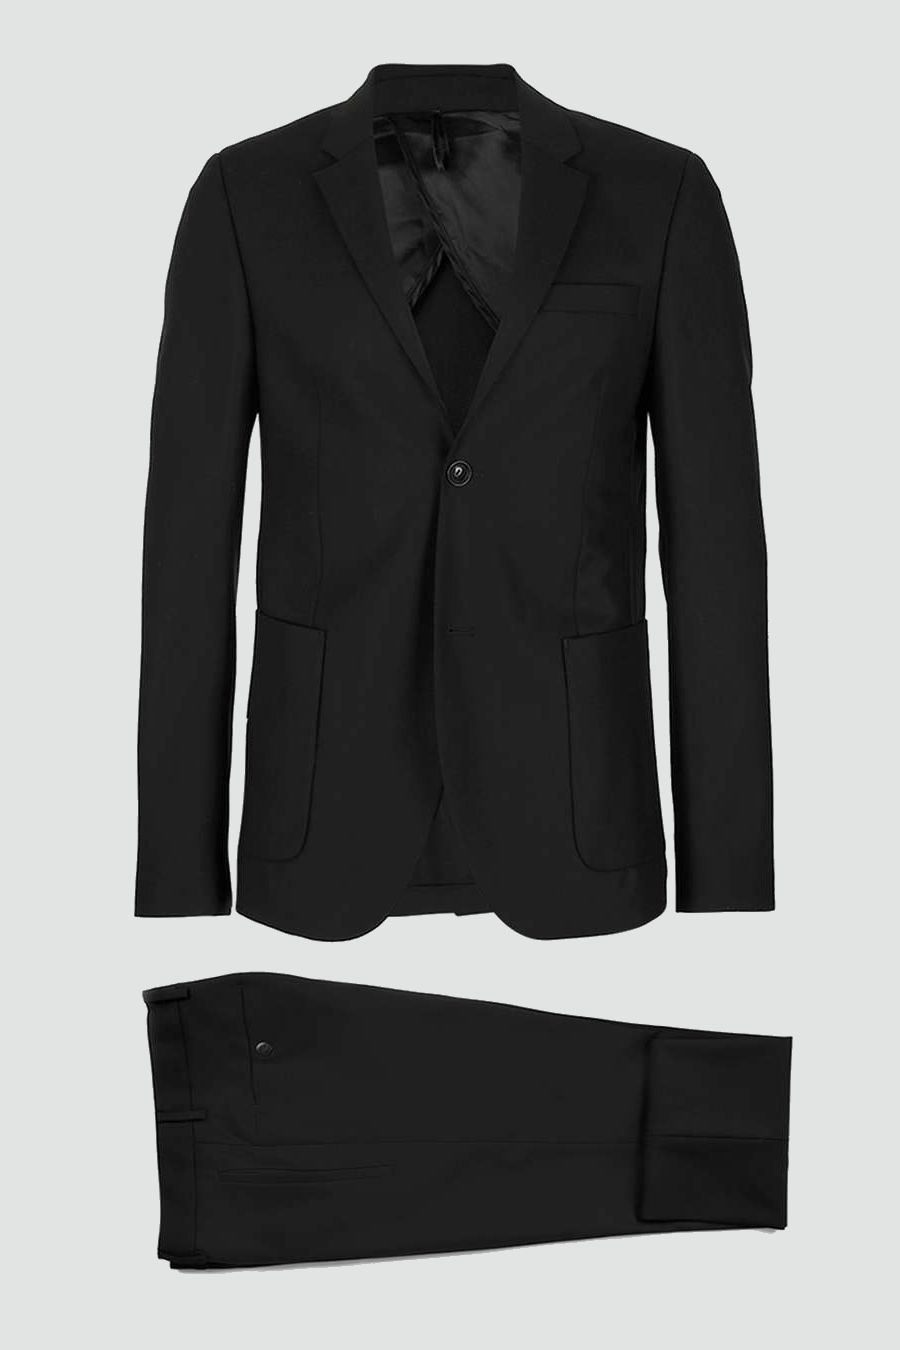 662ddf9ba5a Daniel wears this suit to Issa s benefit in episode 7. Topman Travel Series  Suit